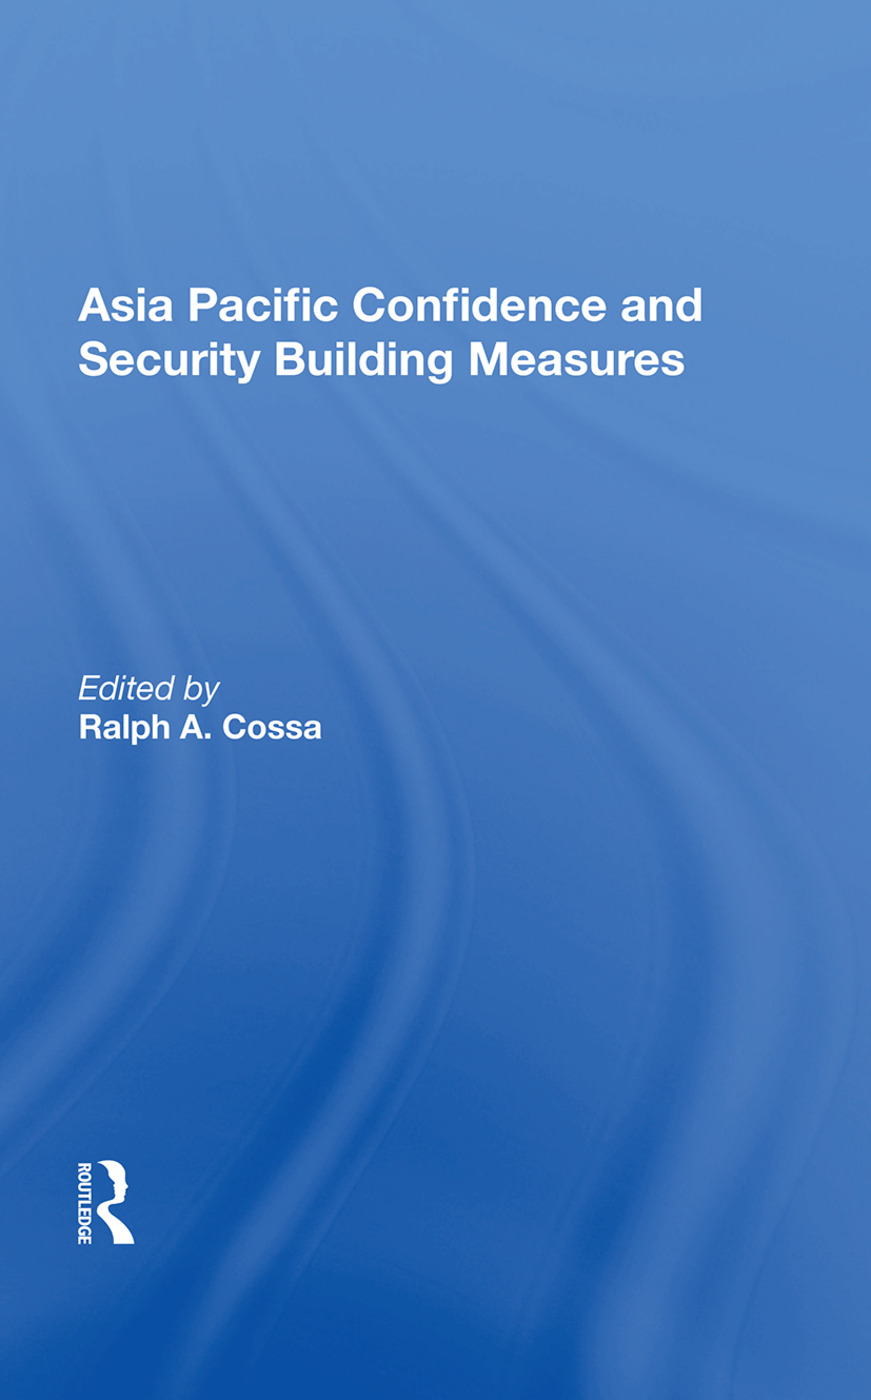 Asia Pacific Confidence and Security Building Measures